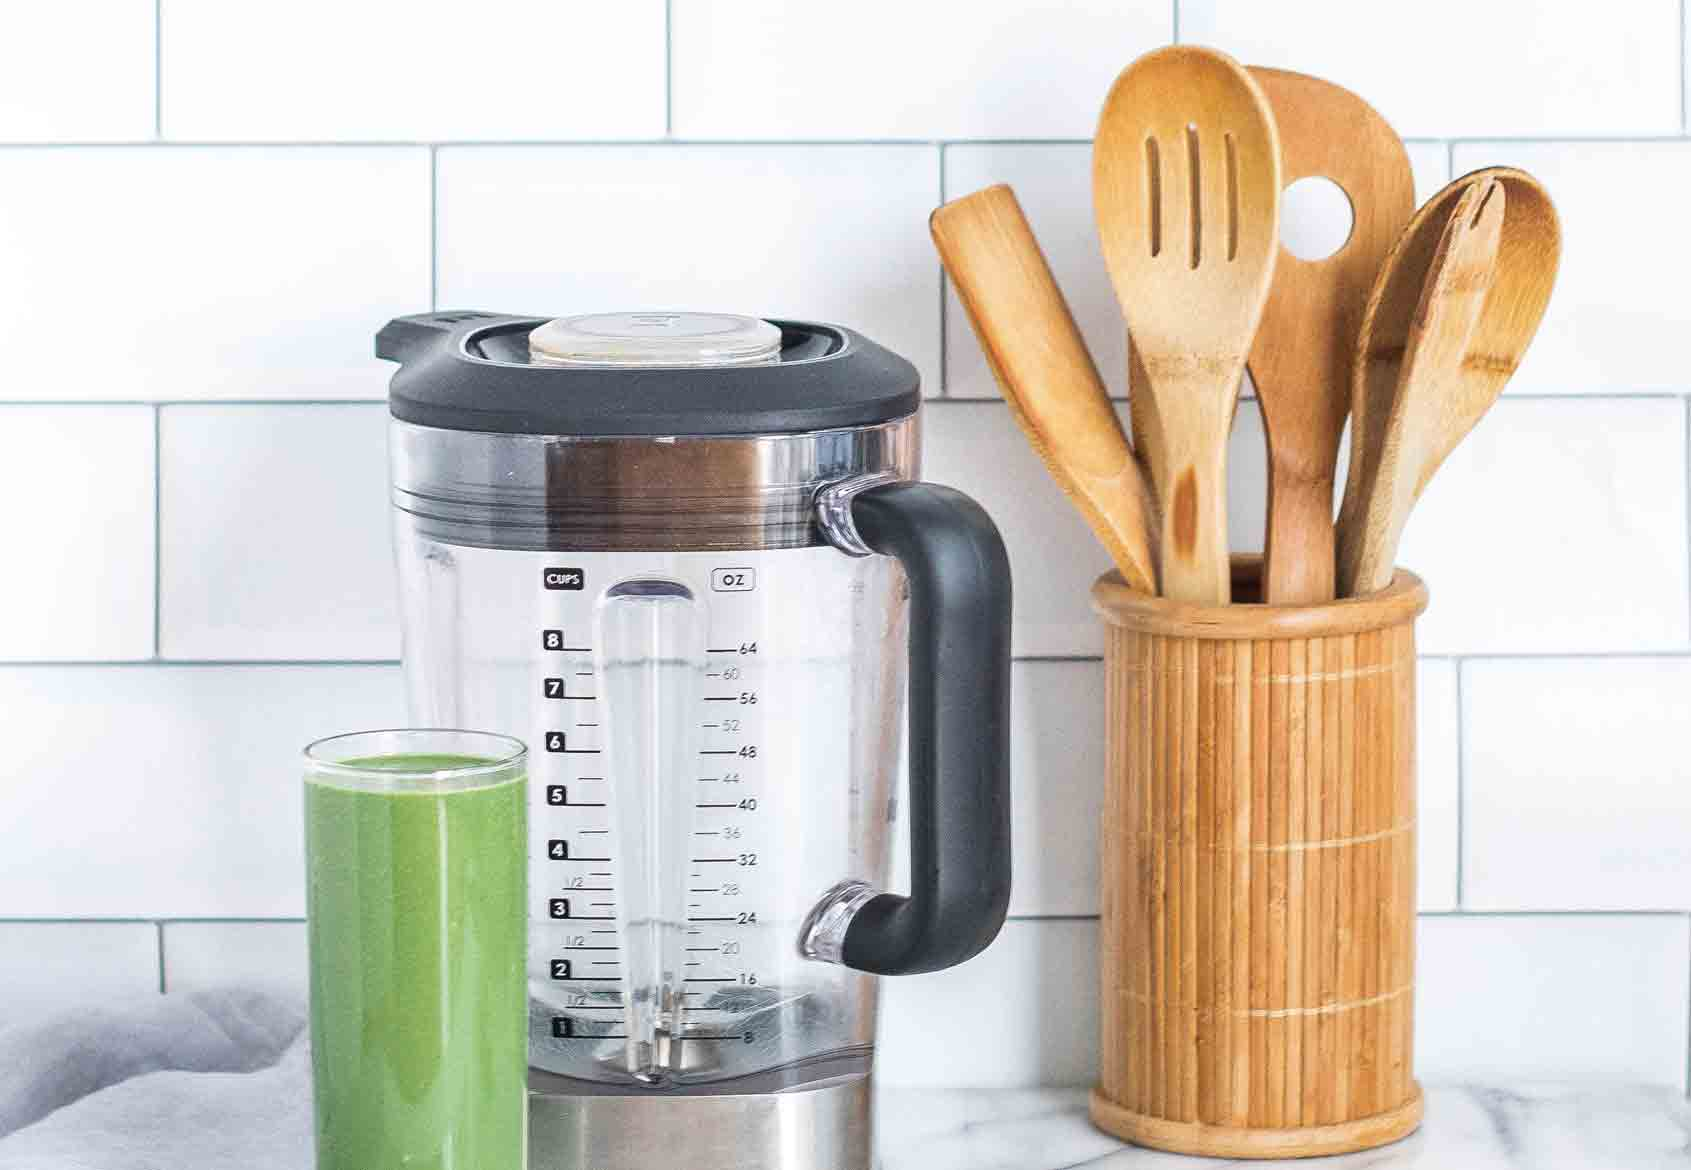 Best-Blender-for-Smoothies-Soups-and-Juices-Reviews